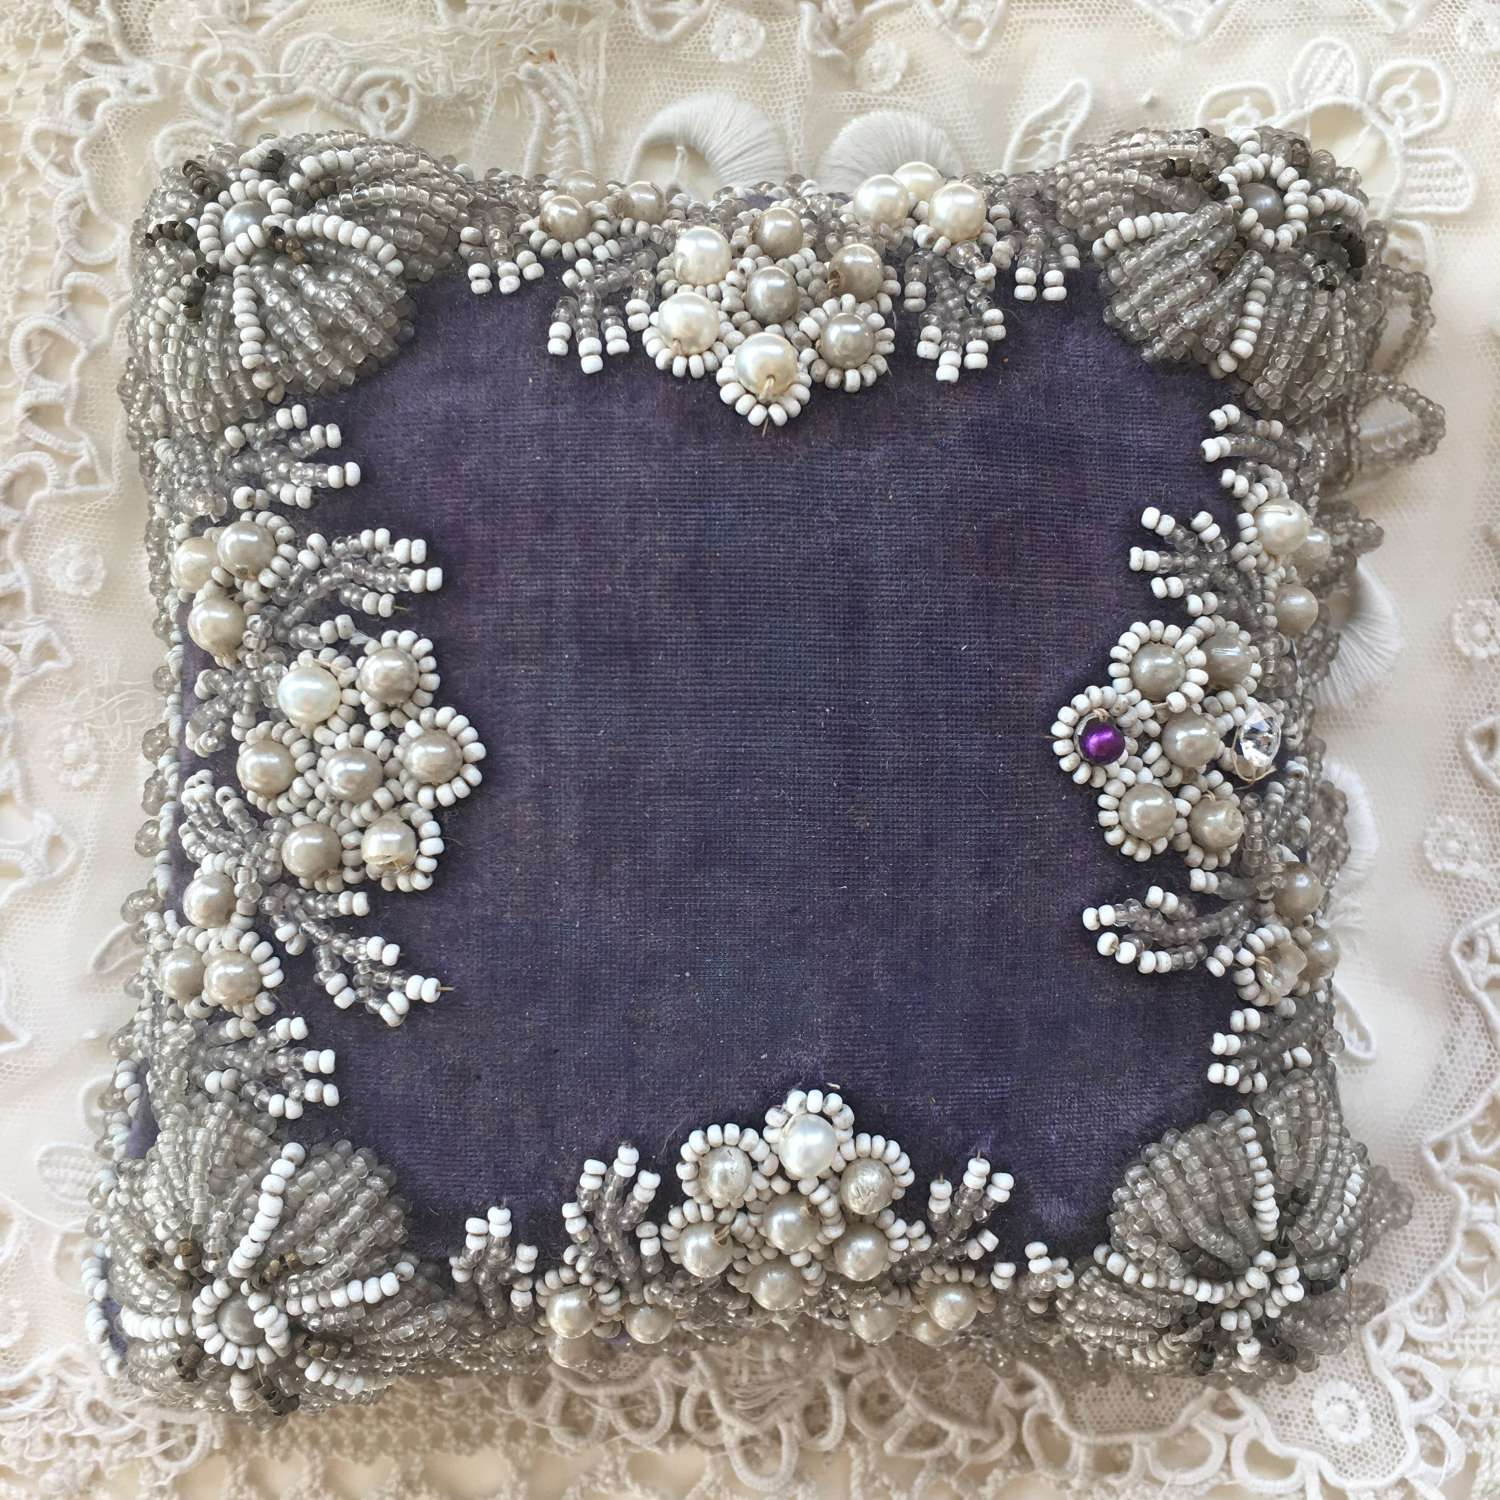 Antique velvet & silk beaded pincushion